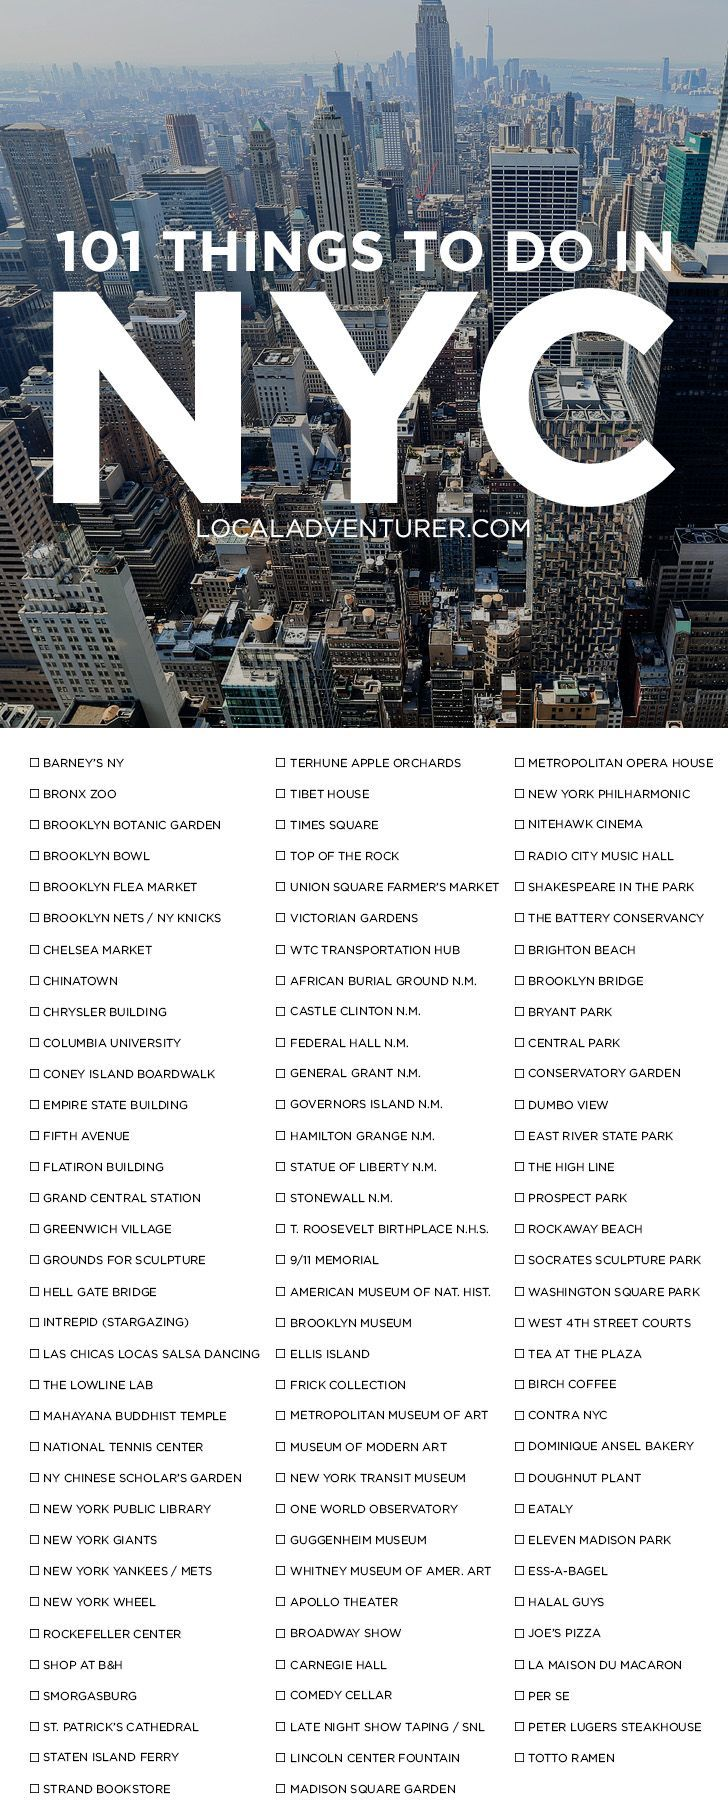 Scrapbook ideas list - Check Out Our 101 Things To Do In Nyc Bucket List From The Touristy Spots